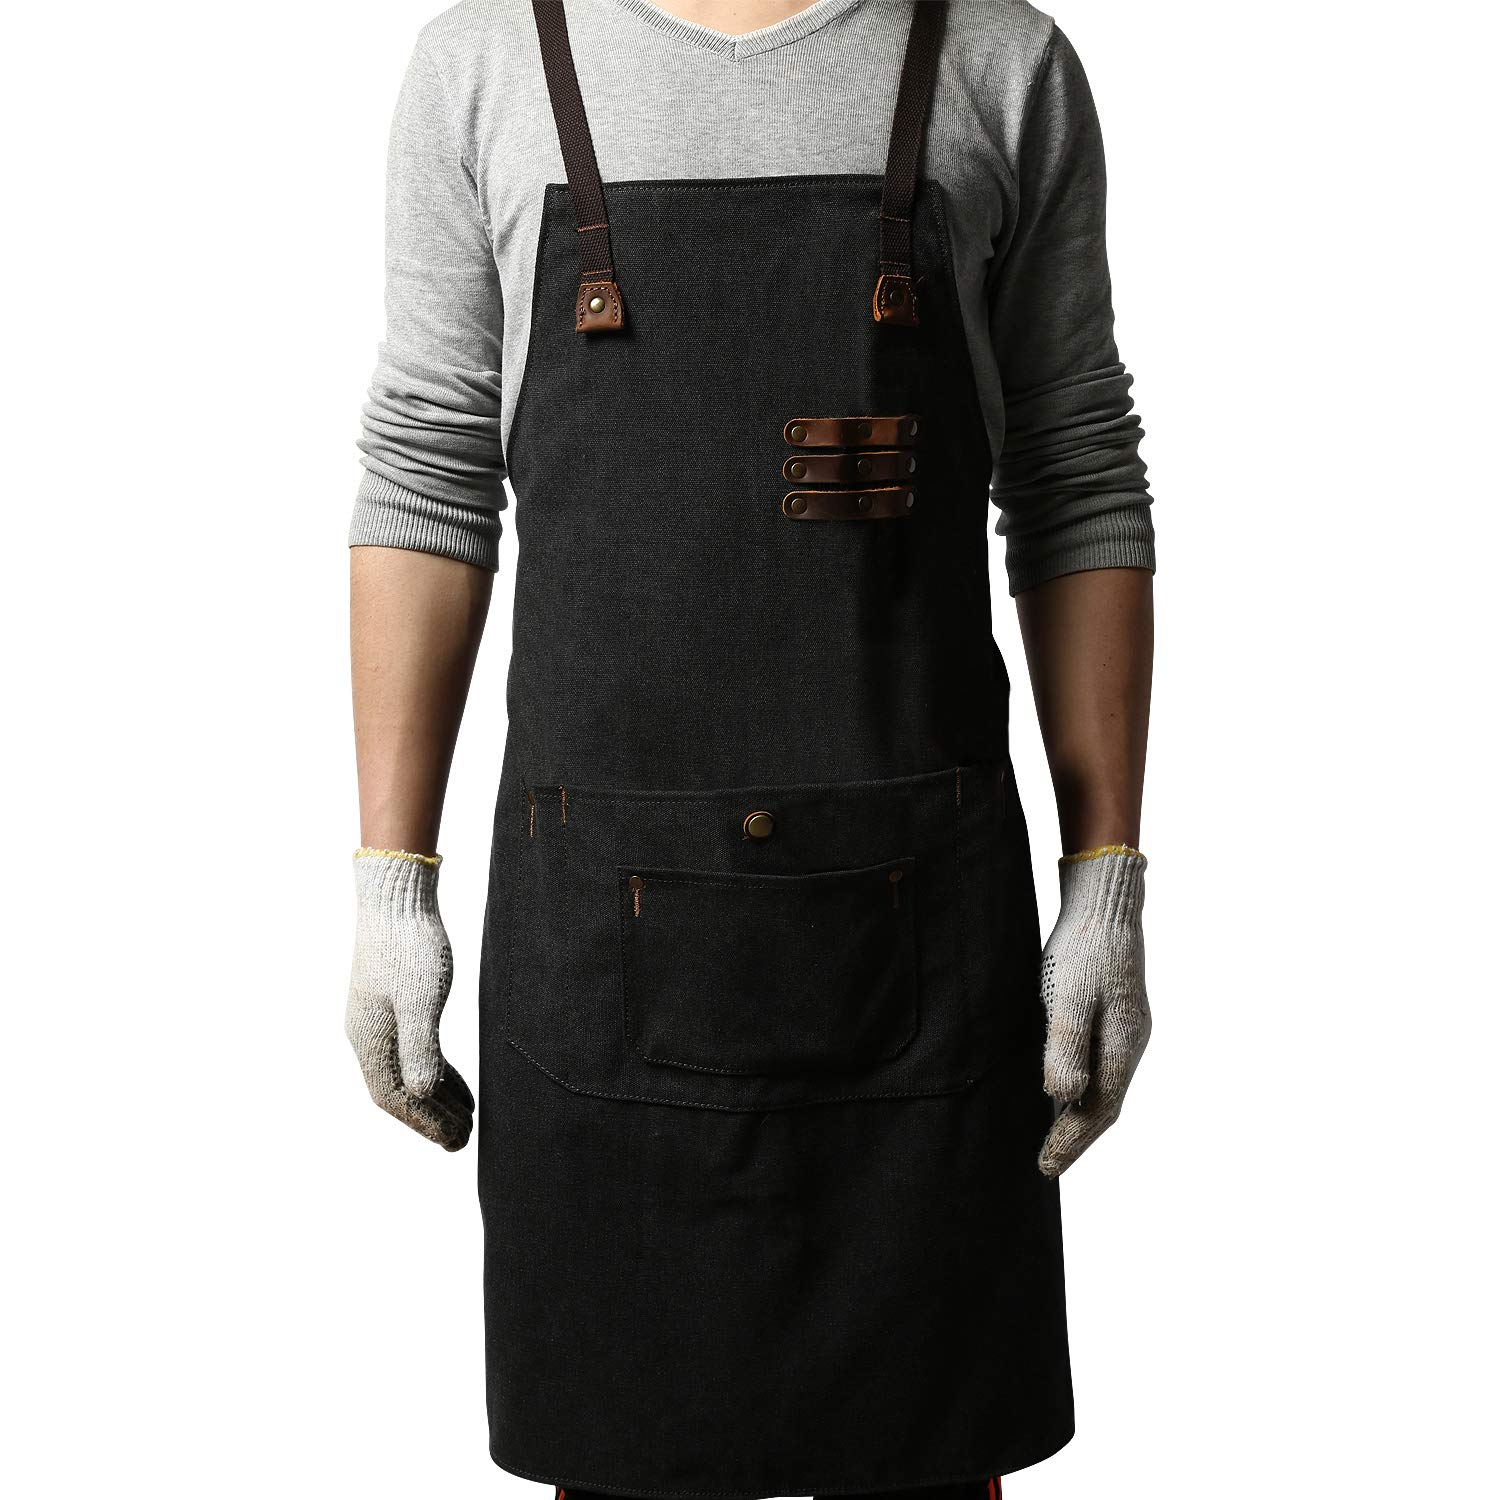 Tool Apron with 7 pockets,Black